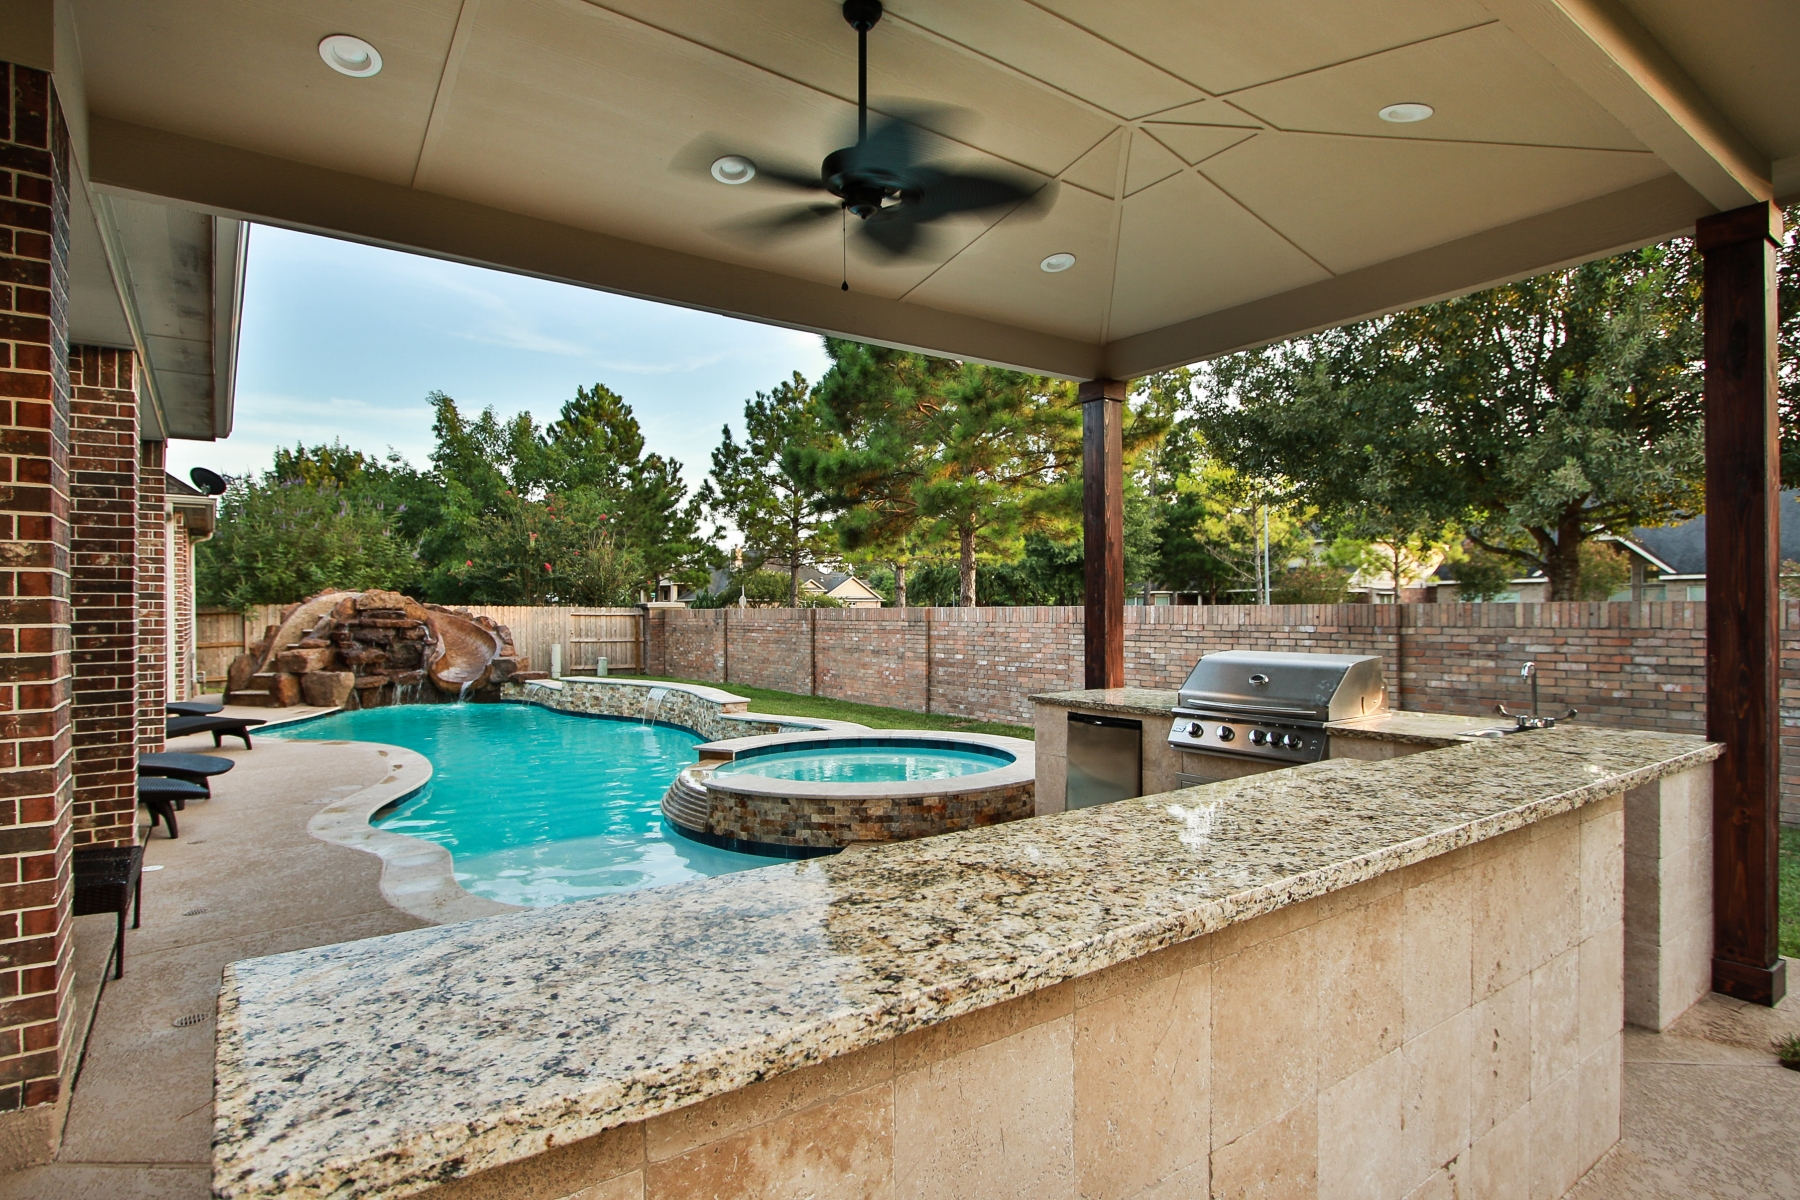 Freeform Pool Viewed From Outdoor Kitchen